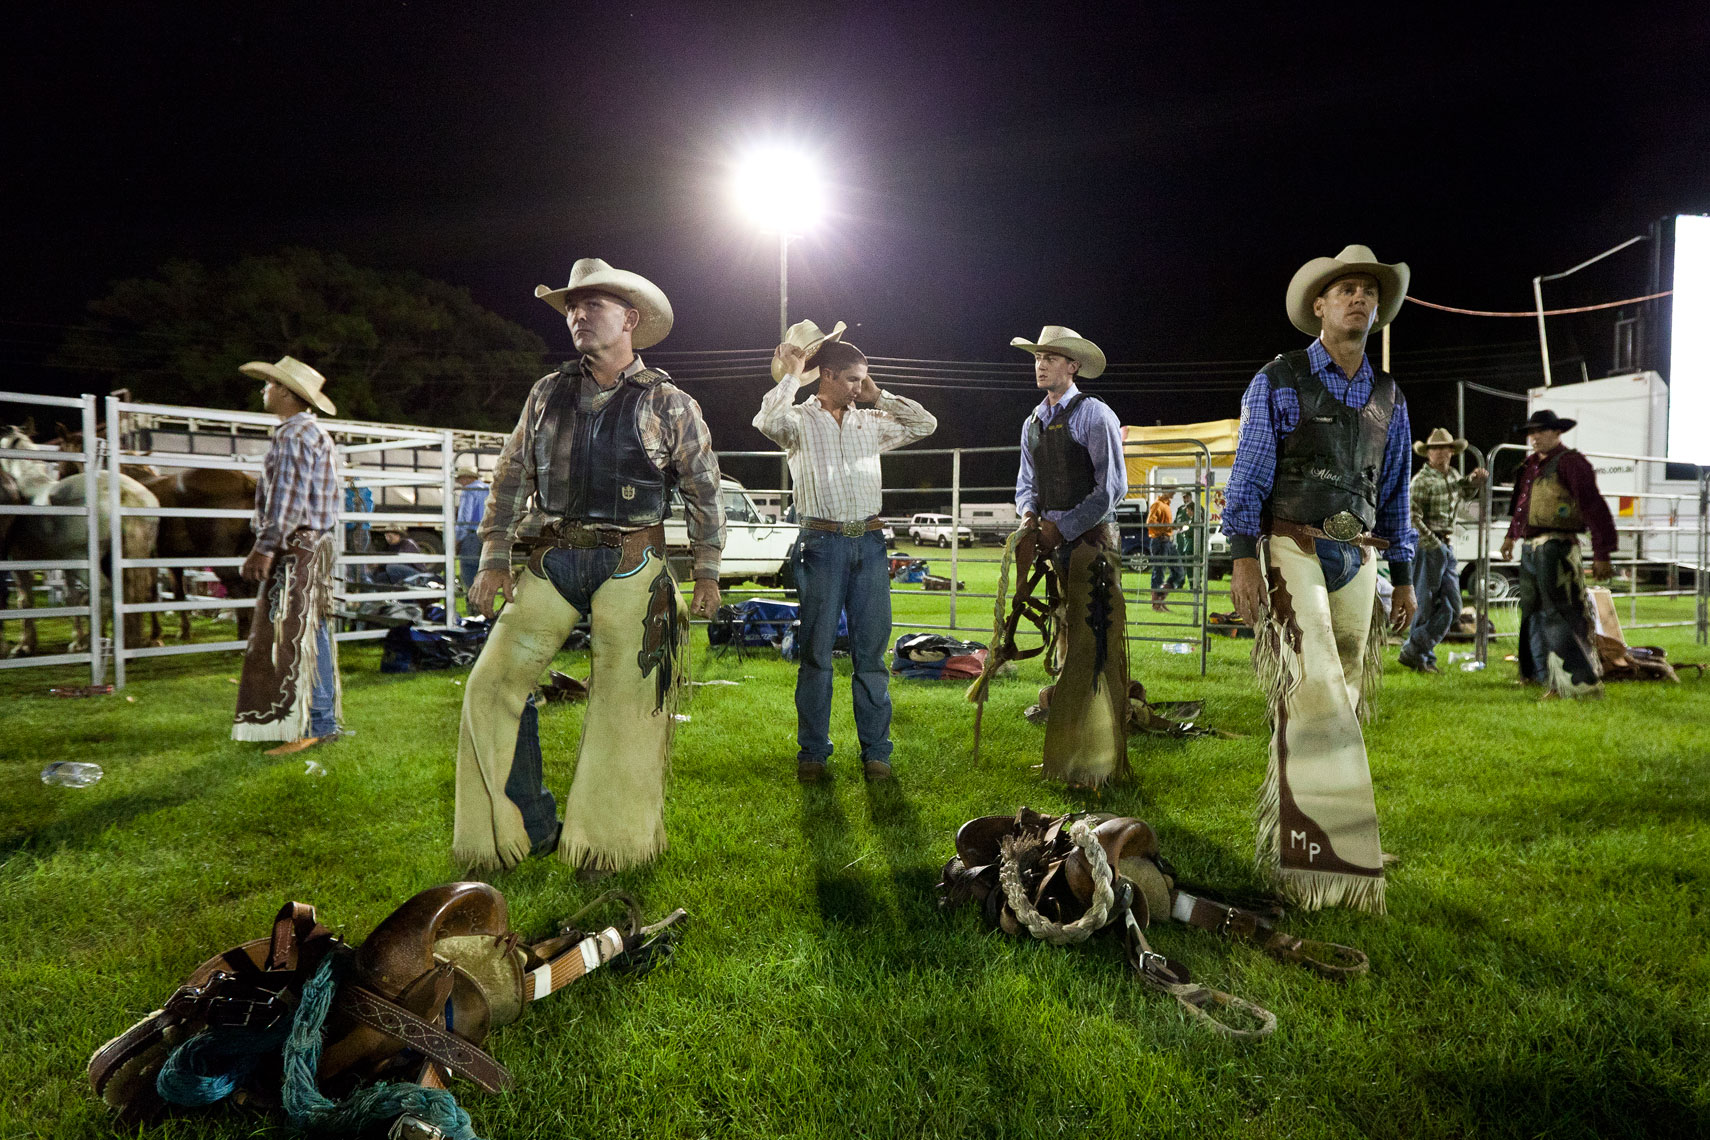 004_MacleanRodeo_MG_4726